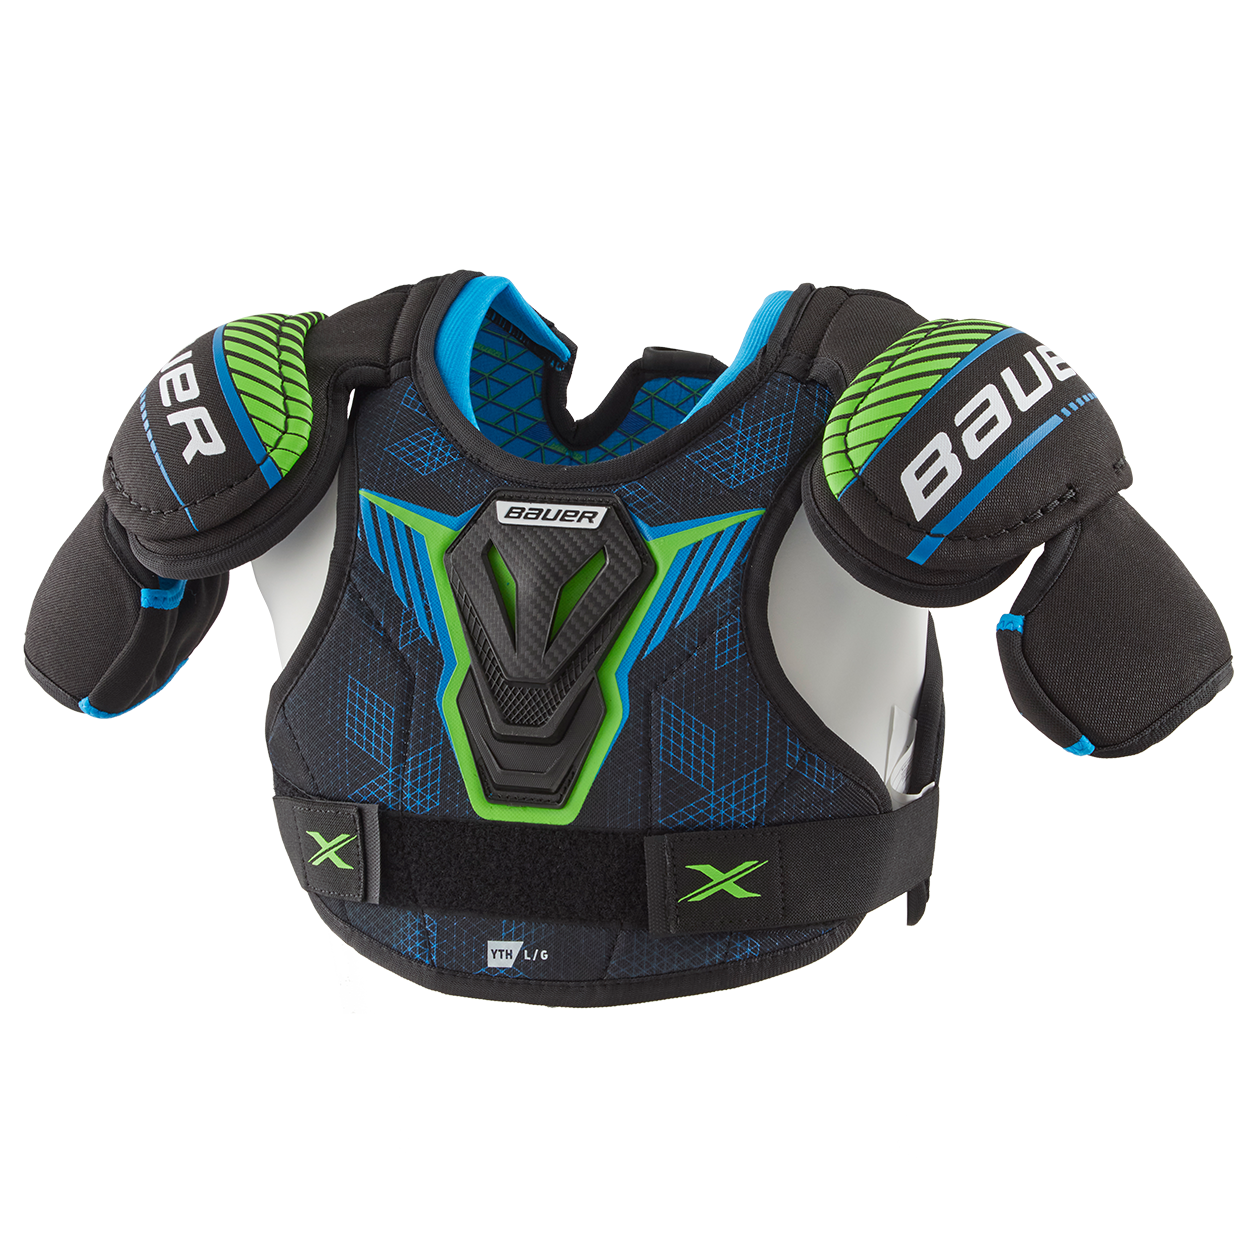 BAUER X Shoulder Pad Youth